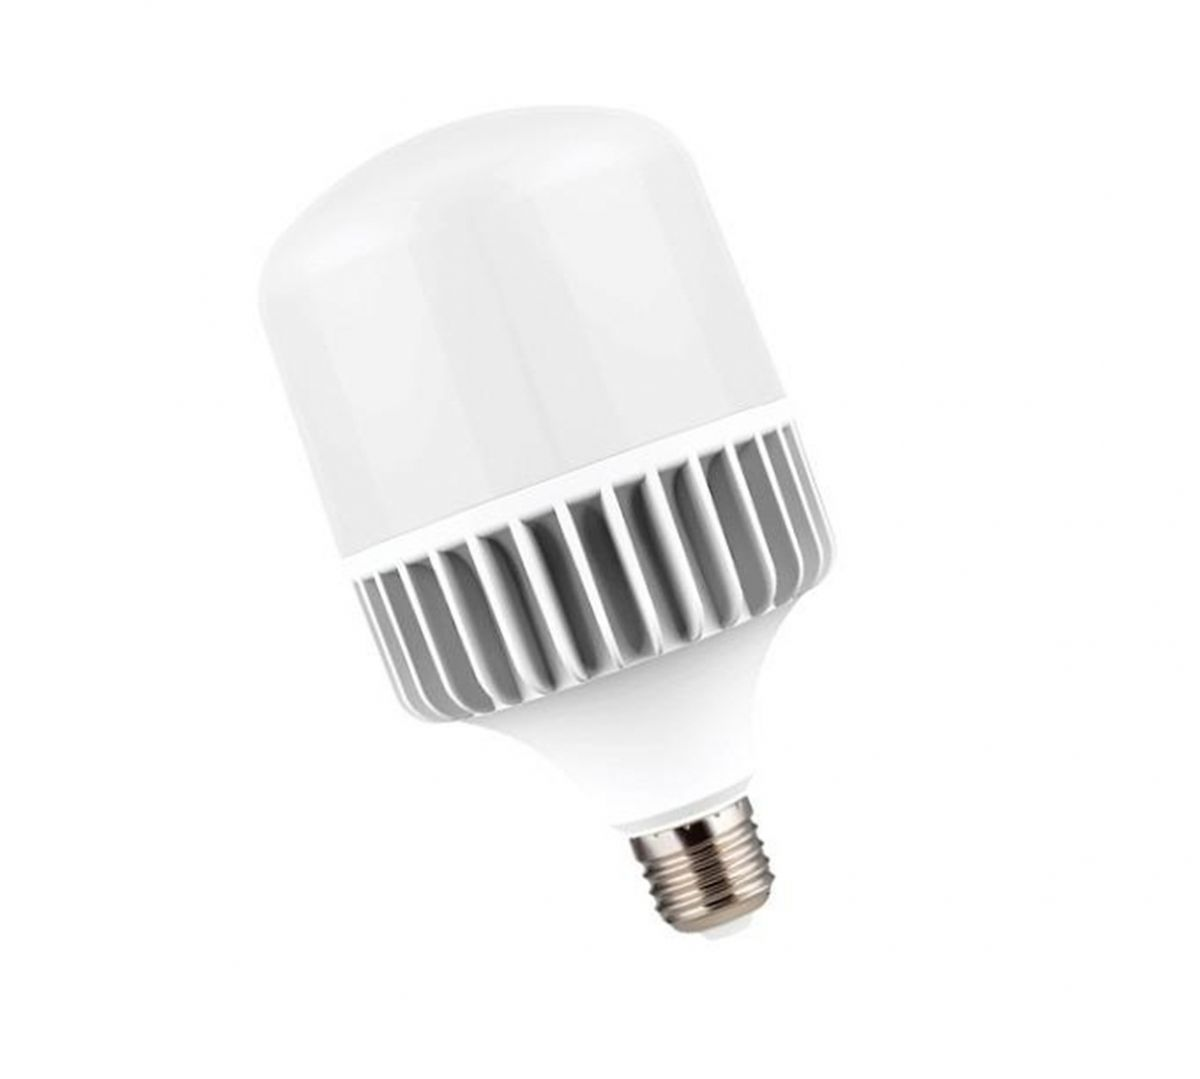 LAMPARA LED POWER BULB E40 50W LUZ FRIA